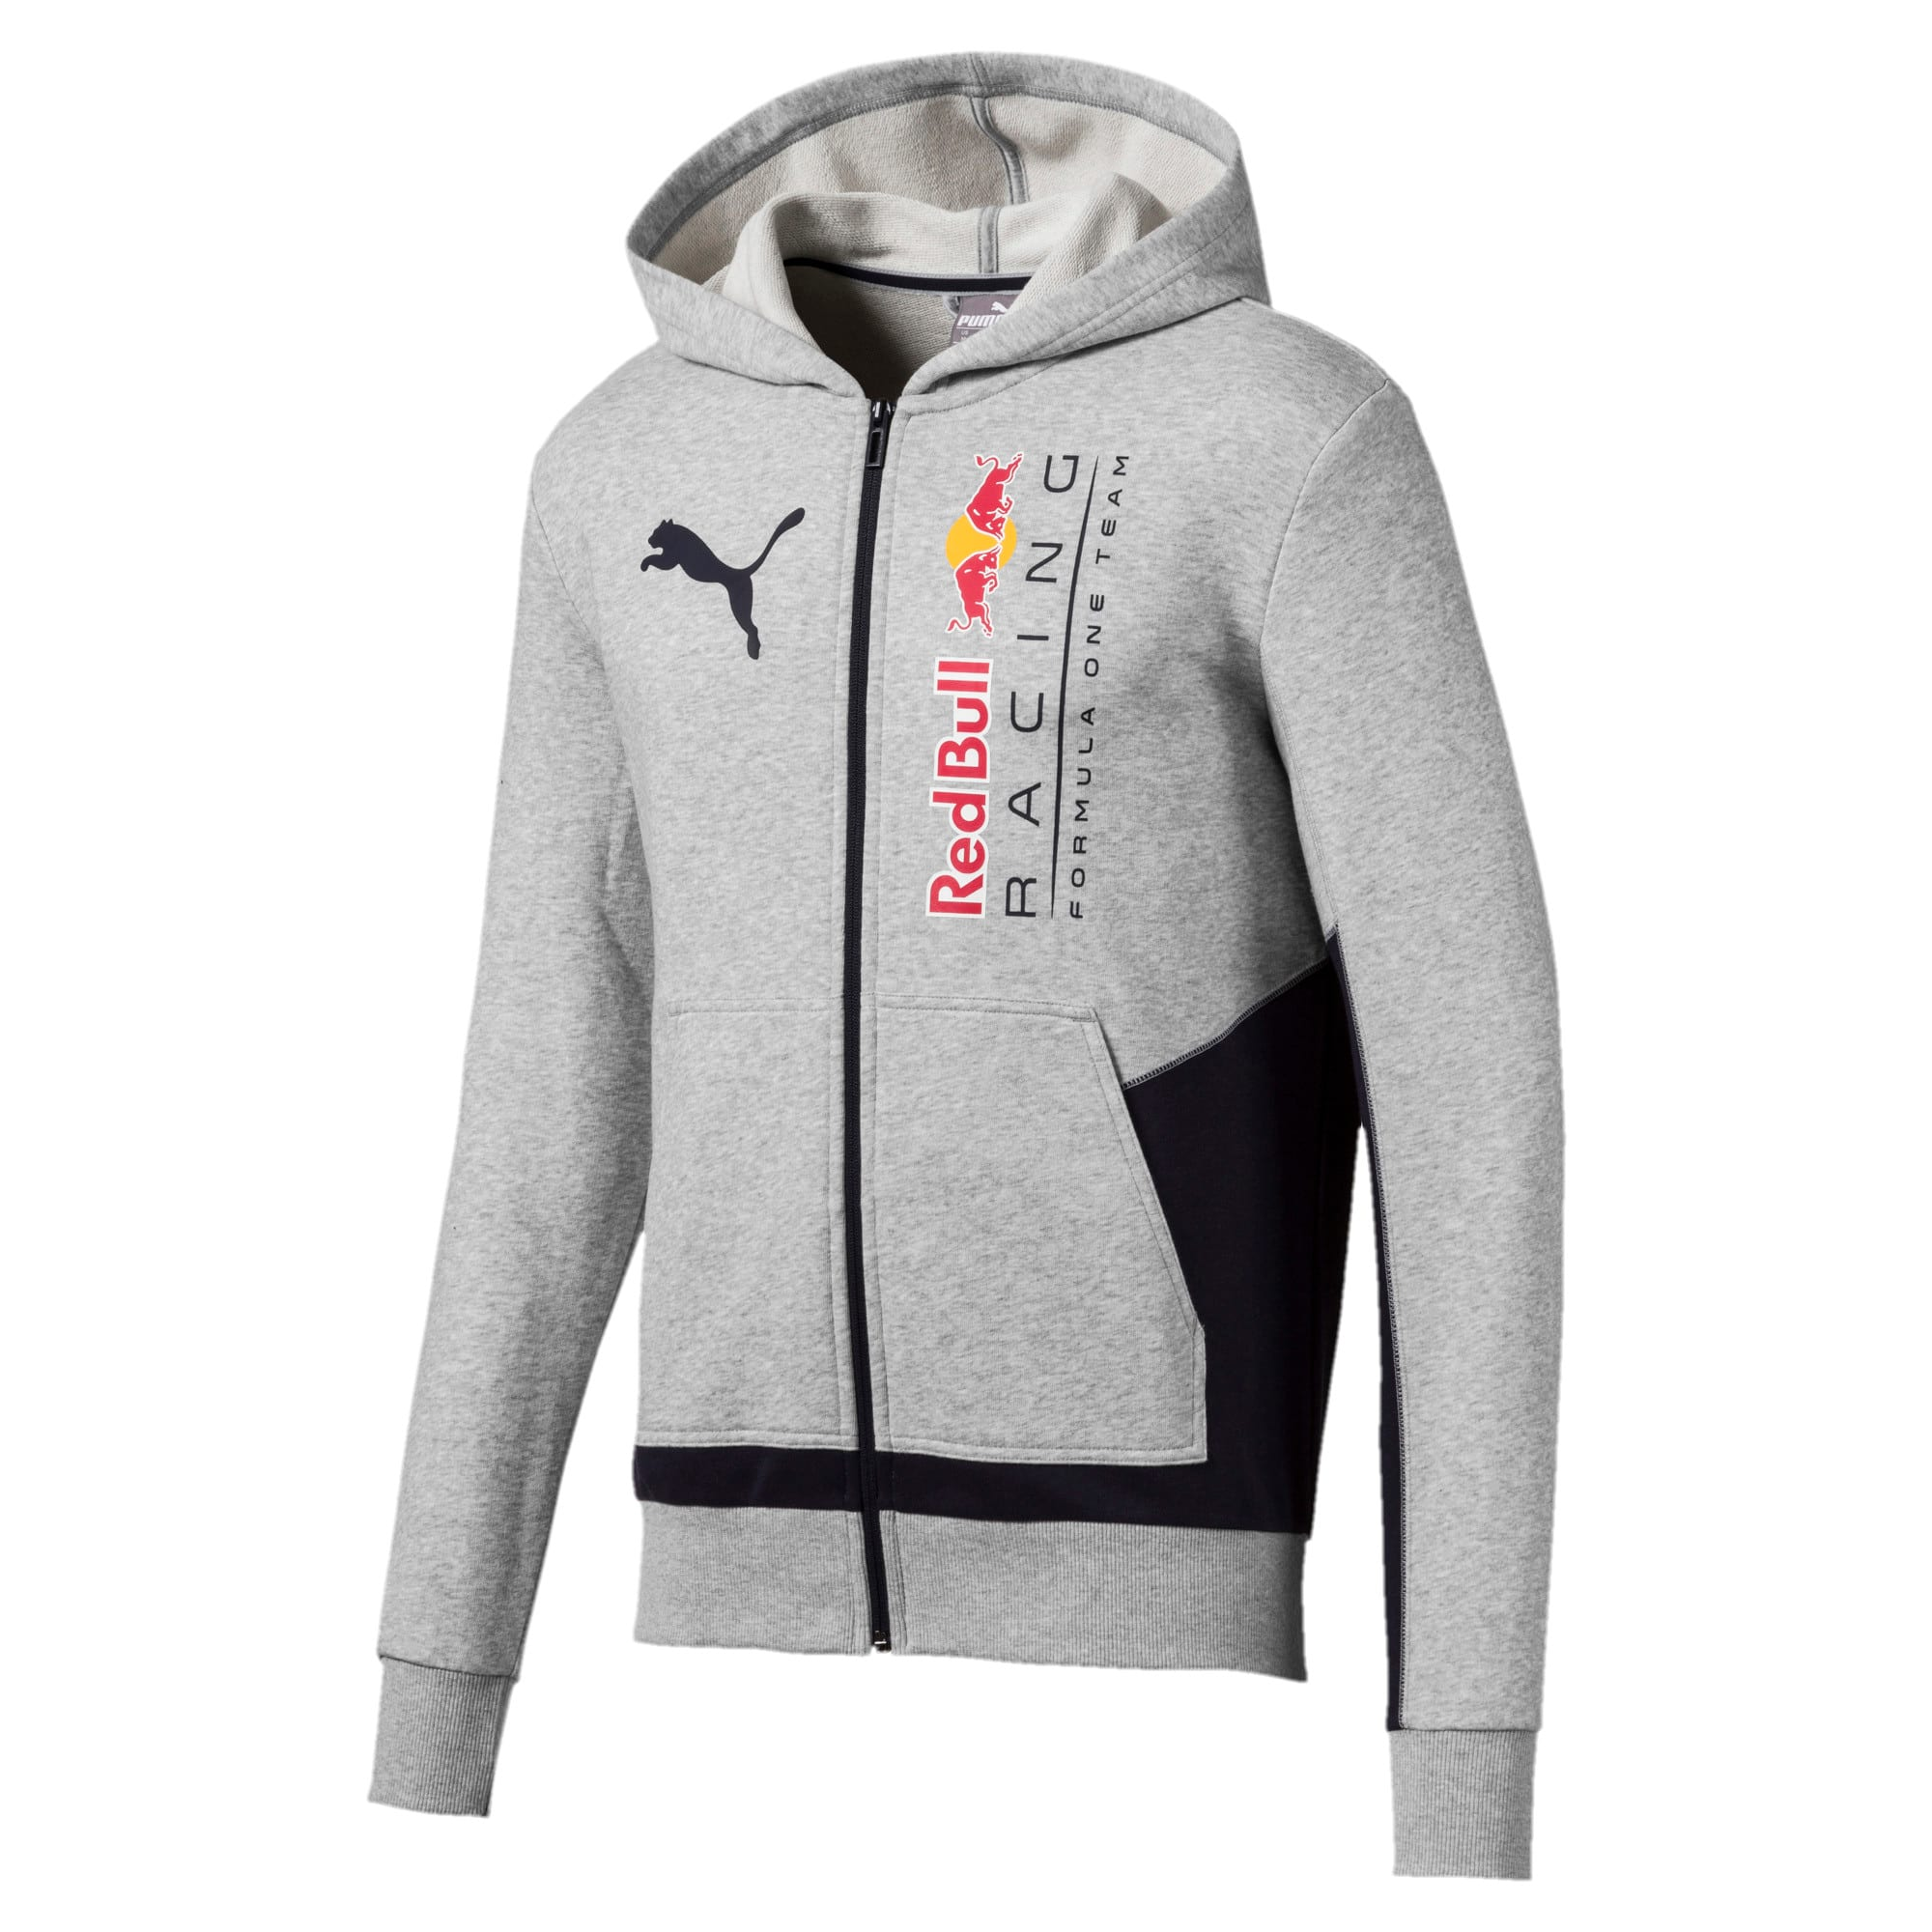 Miniatura 1 de Chaqueta deportiva con capucha Red Bull Racing para hombre, Light Gray Heather, mediano